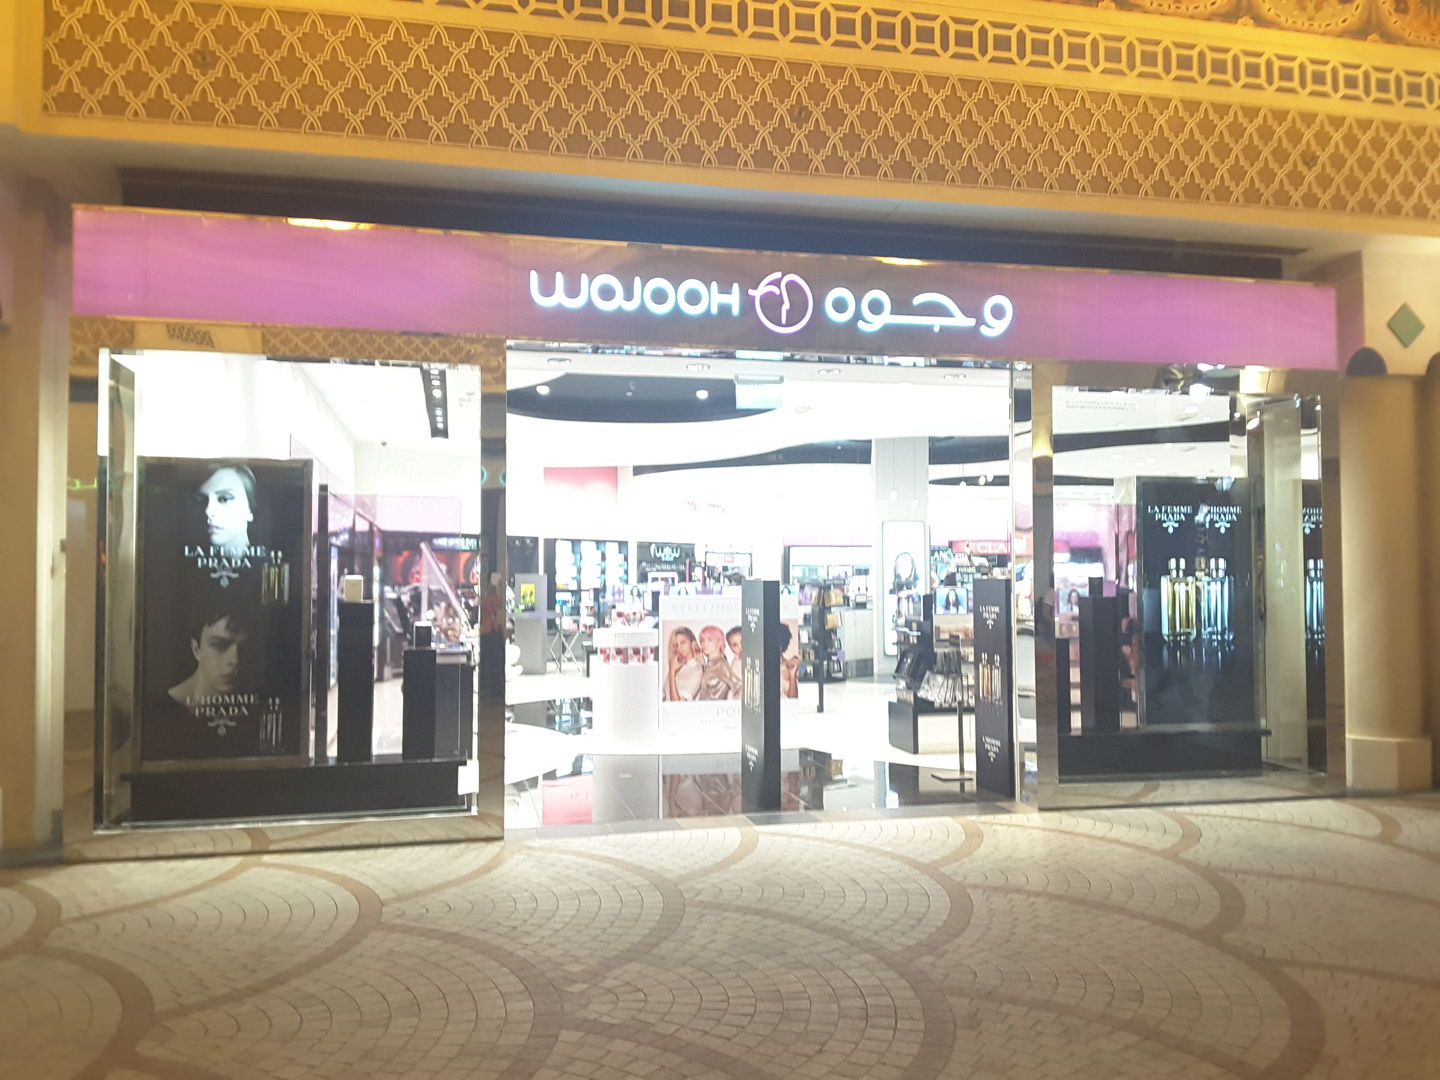 HiDubai-business-wojooh-shopping-beauty-cosmetics-stores-ibn-batuta-jebel-ali-1-dubai-2